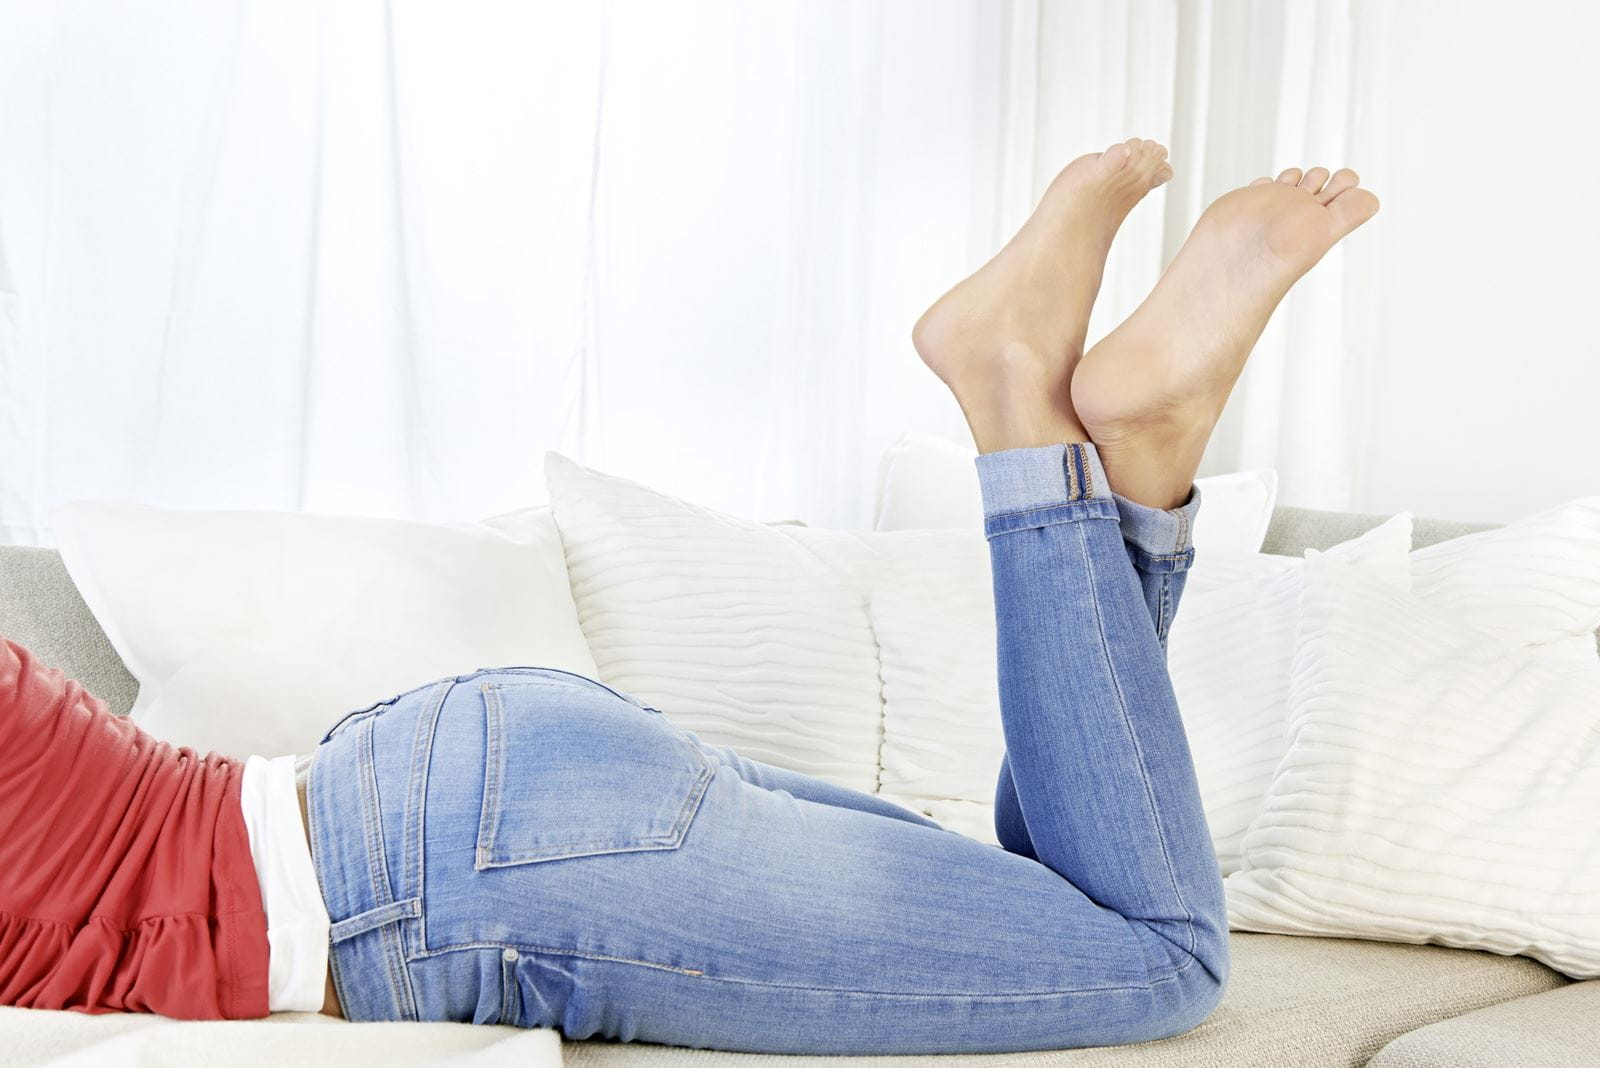 Woman lying on couch feet in air